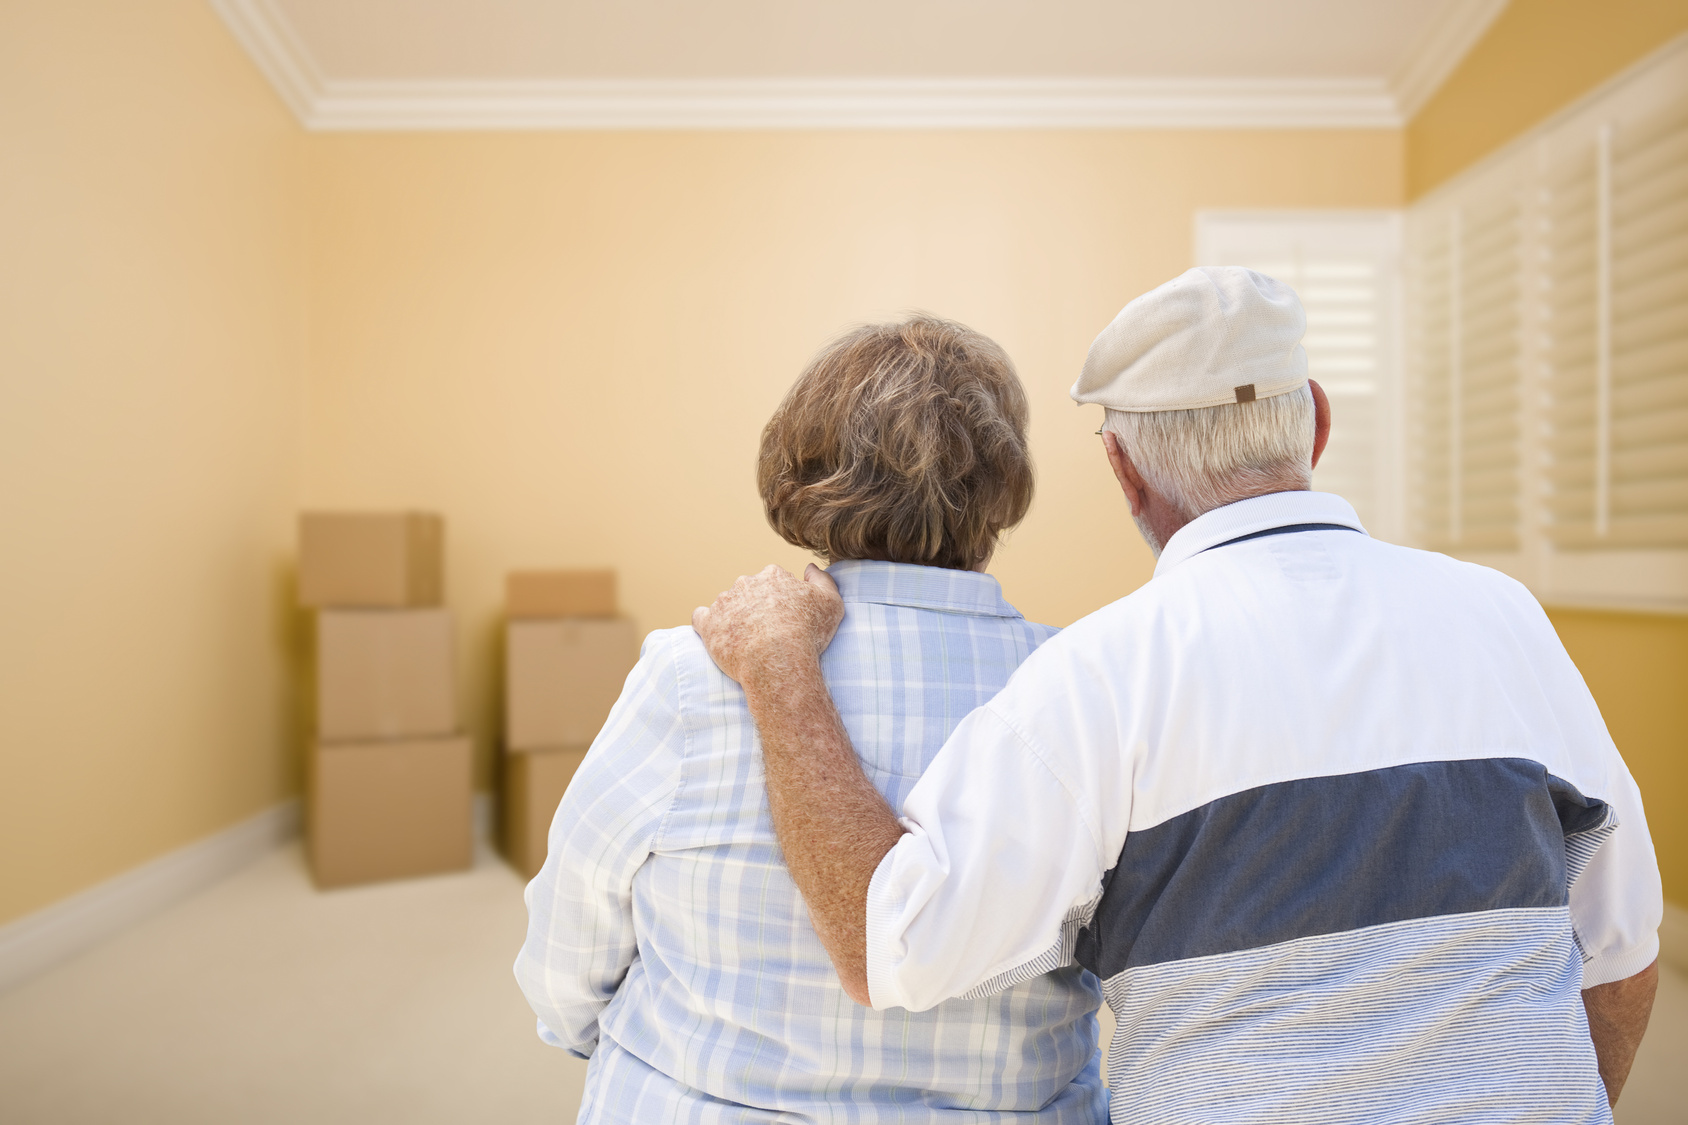 advice_for_seniors_moving_to_a_smaller_home_or_retirement_community.jpg